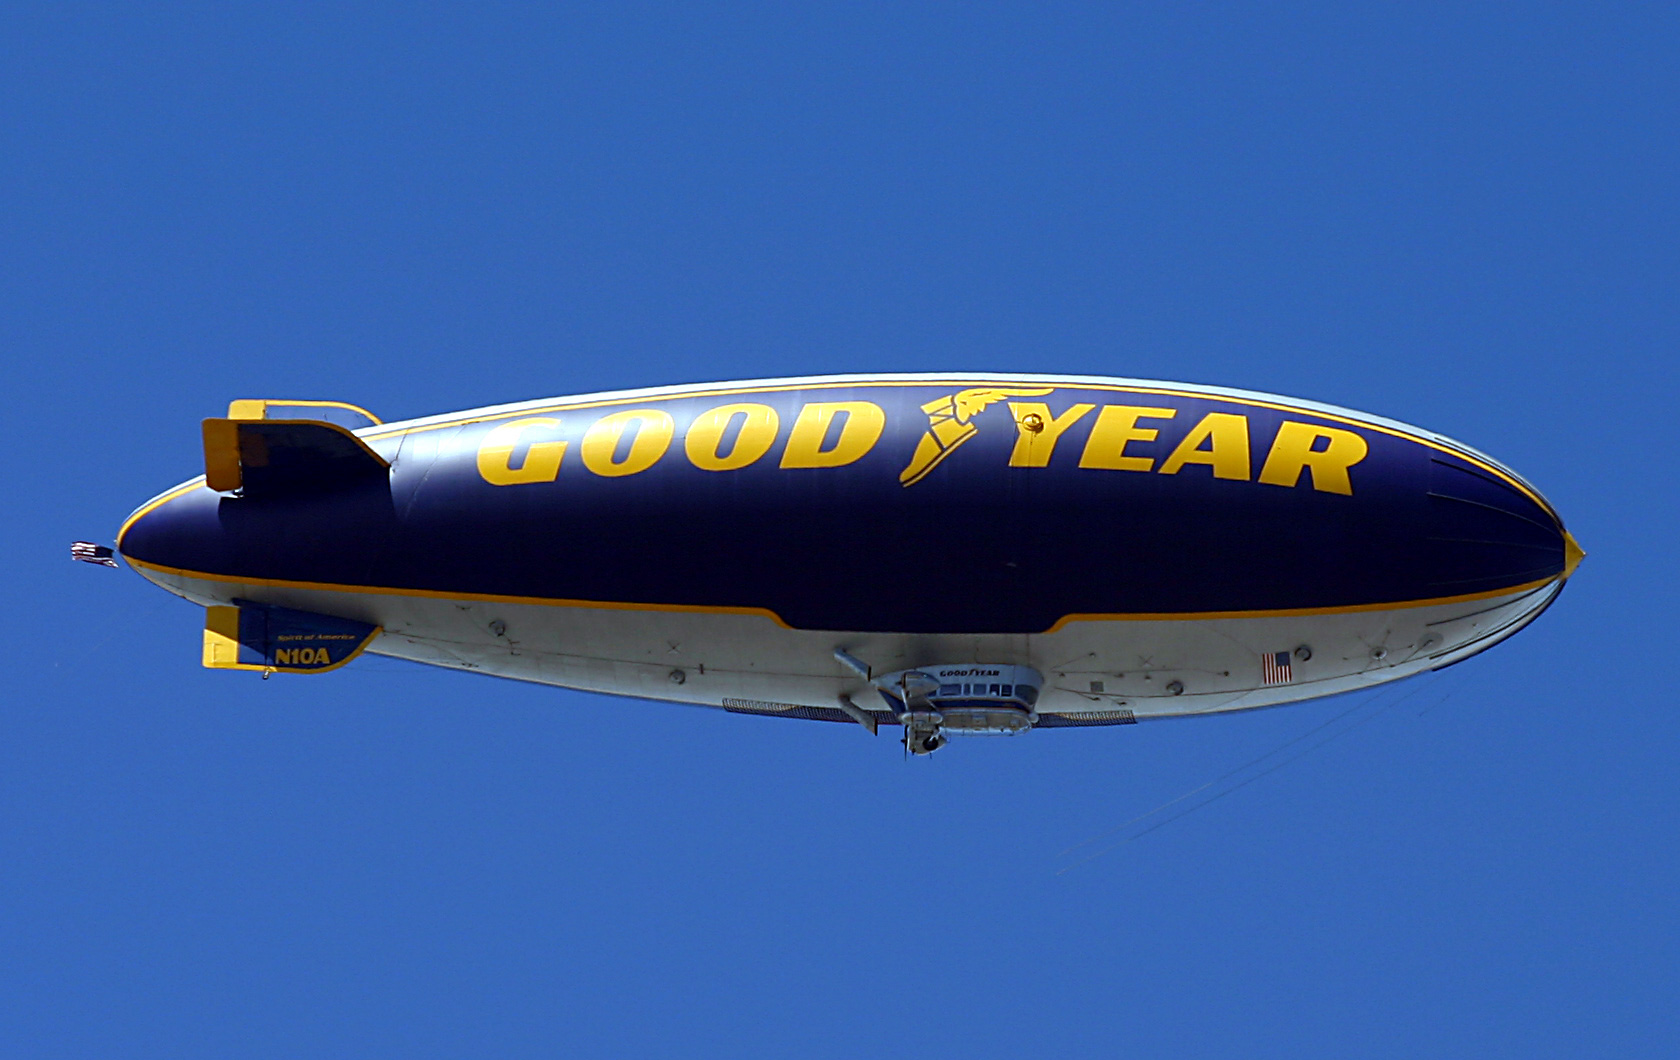 File:Goodyear Blimp.jpg - Wikimedia Commons